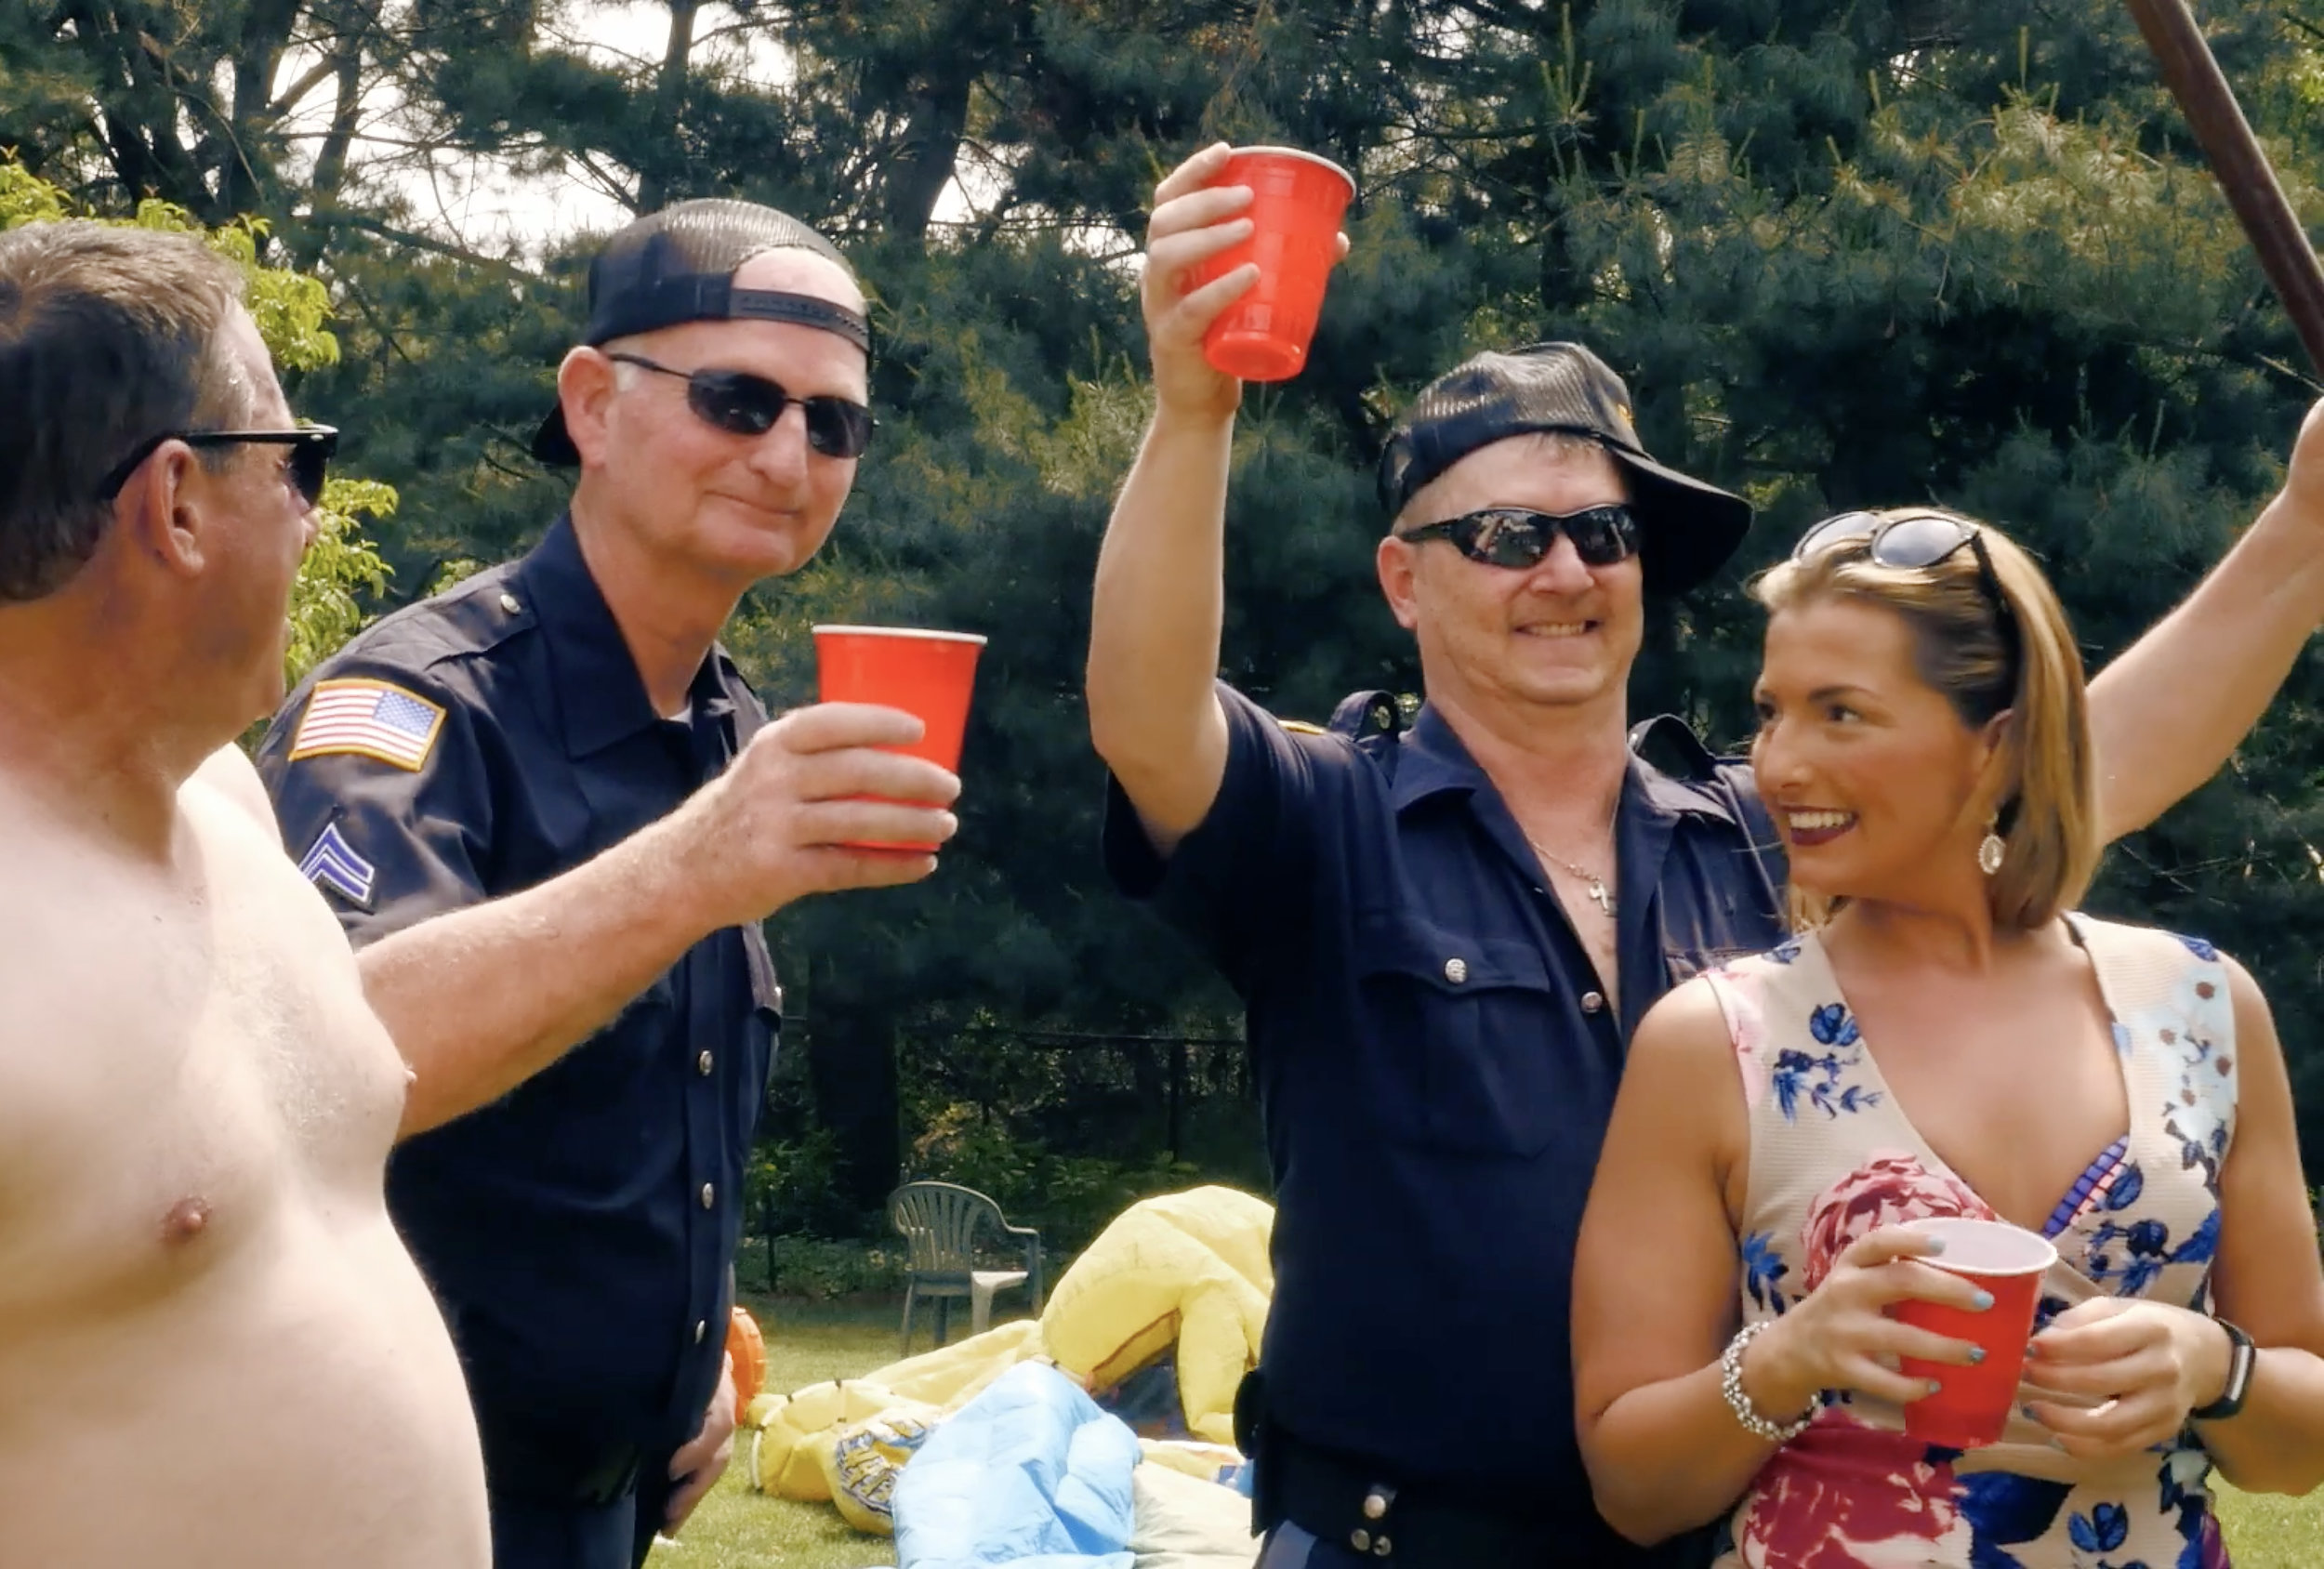 pool party cops.jpg